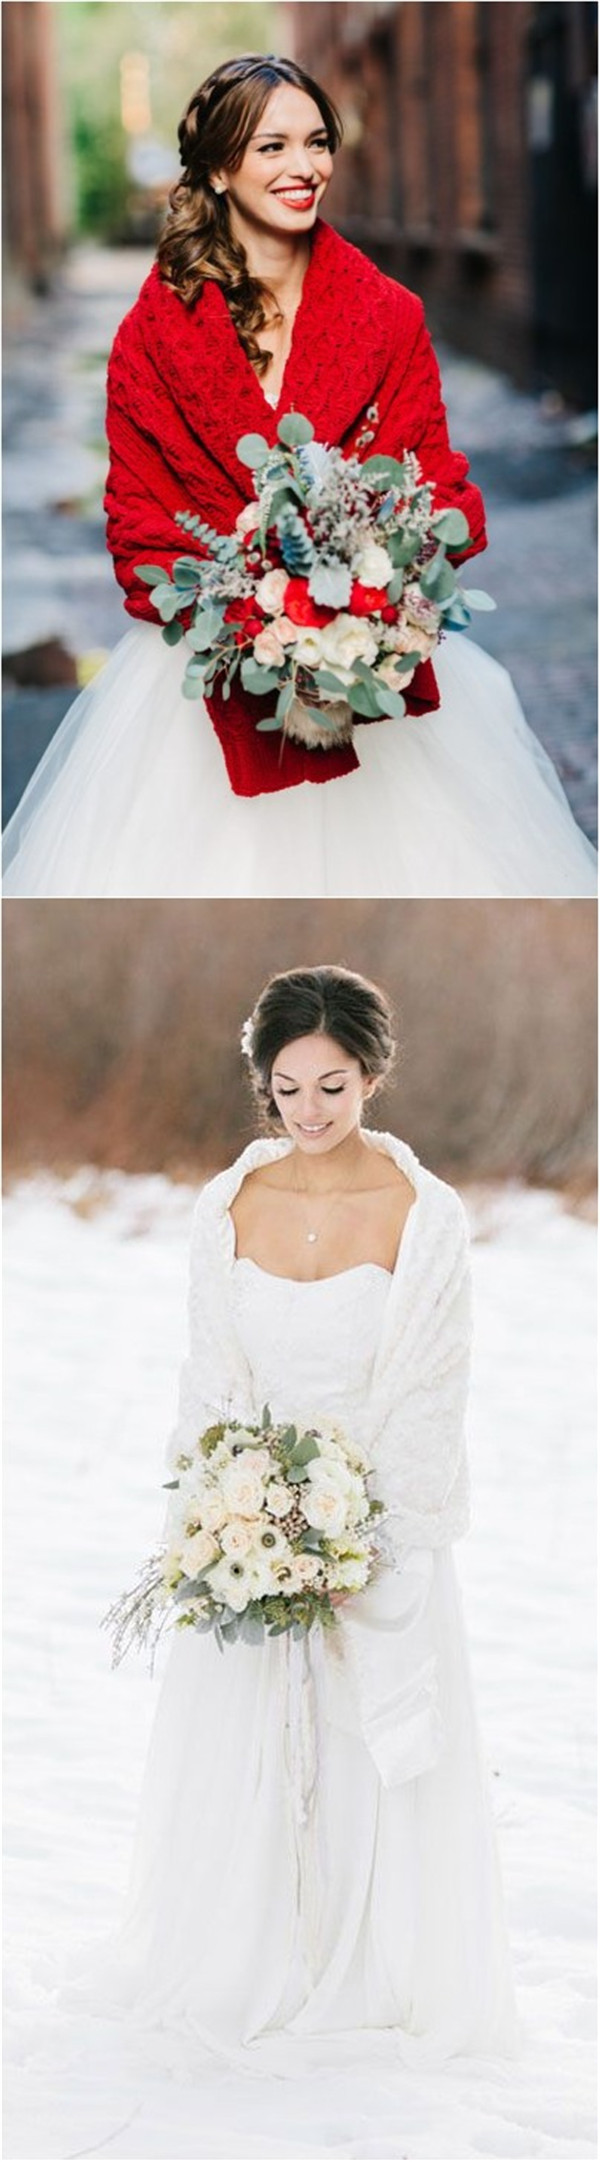 16 christmas wedding ideas you can t miss for Dresses to wear to a christmas wedding